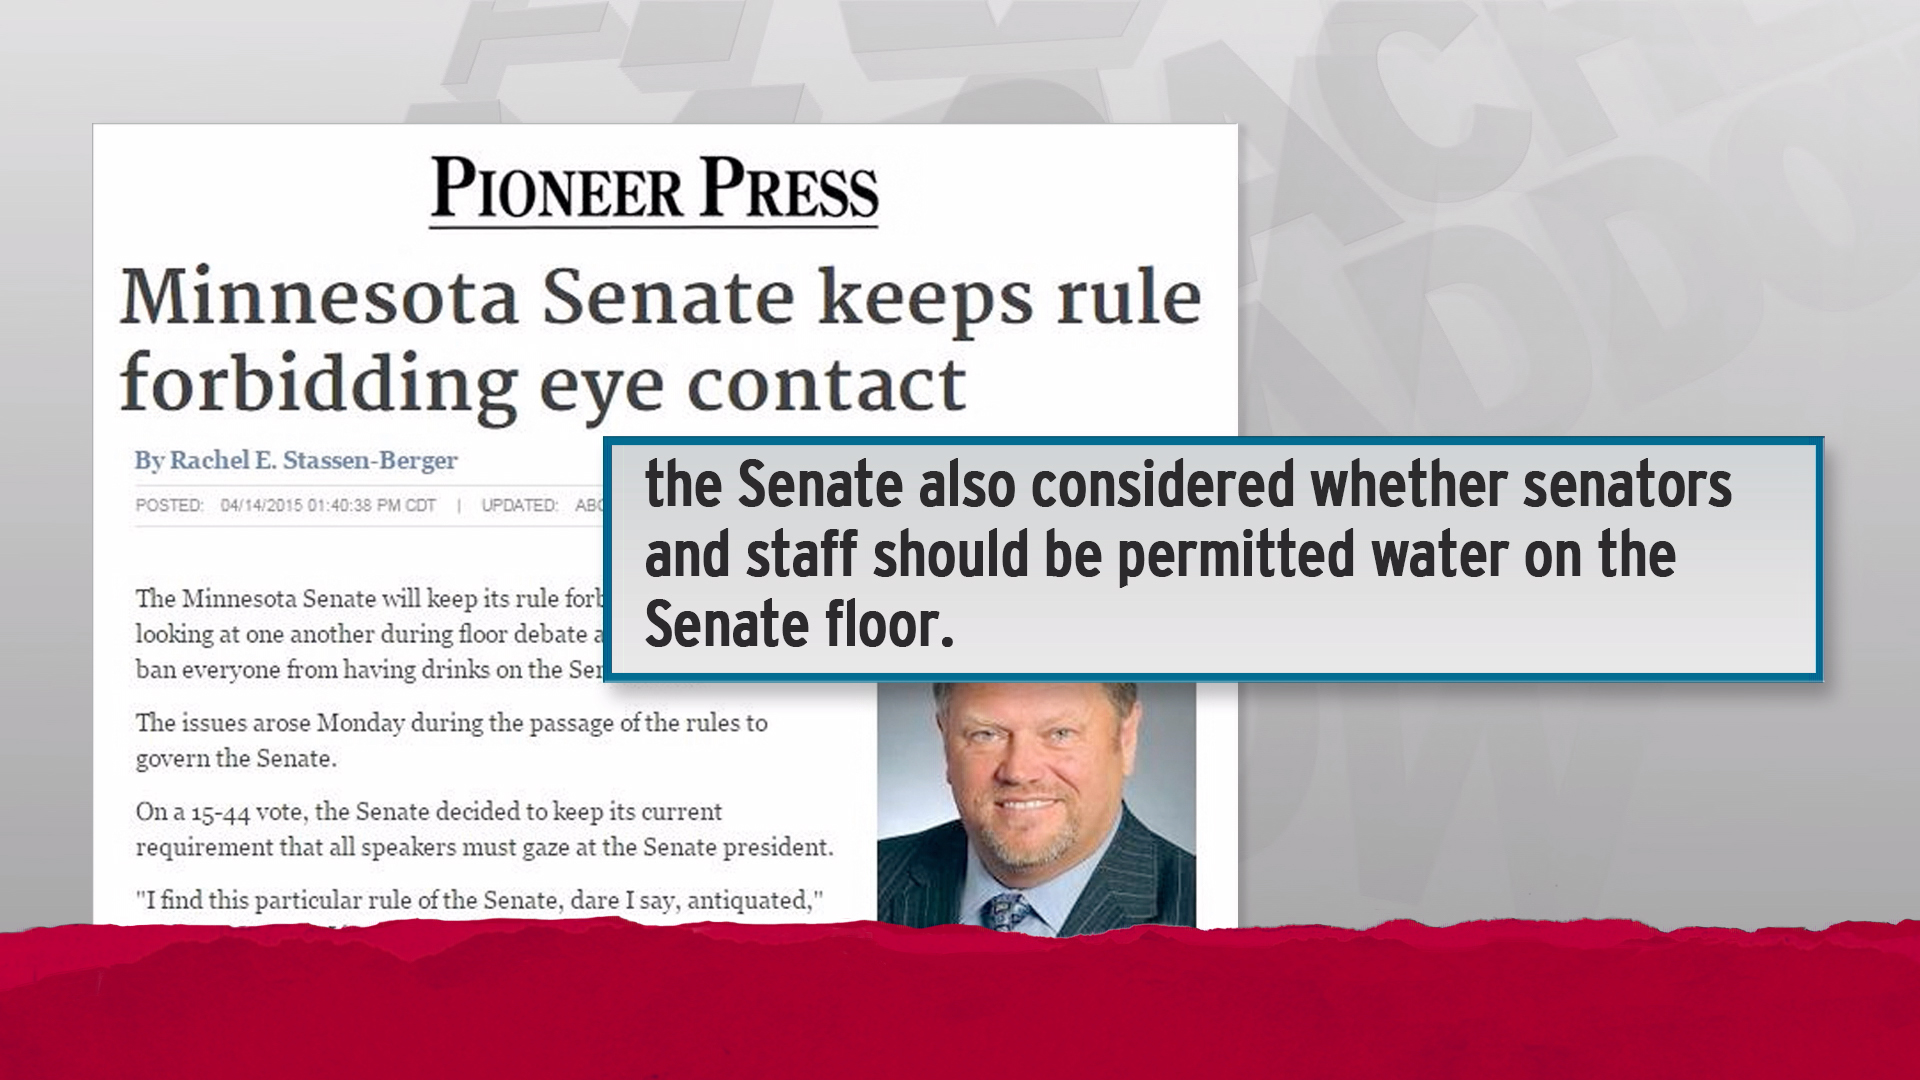 'No eye contact' rule kept by state senate